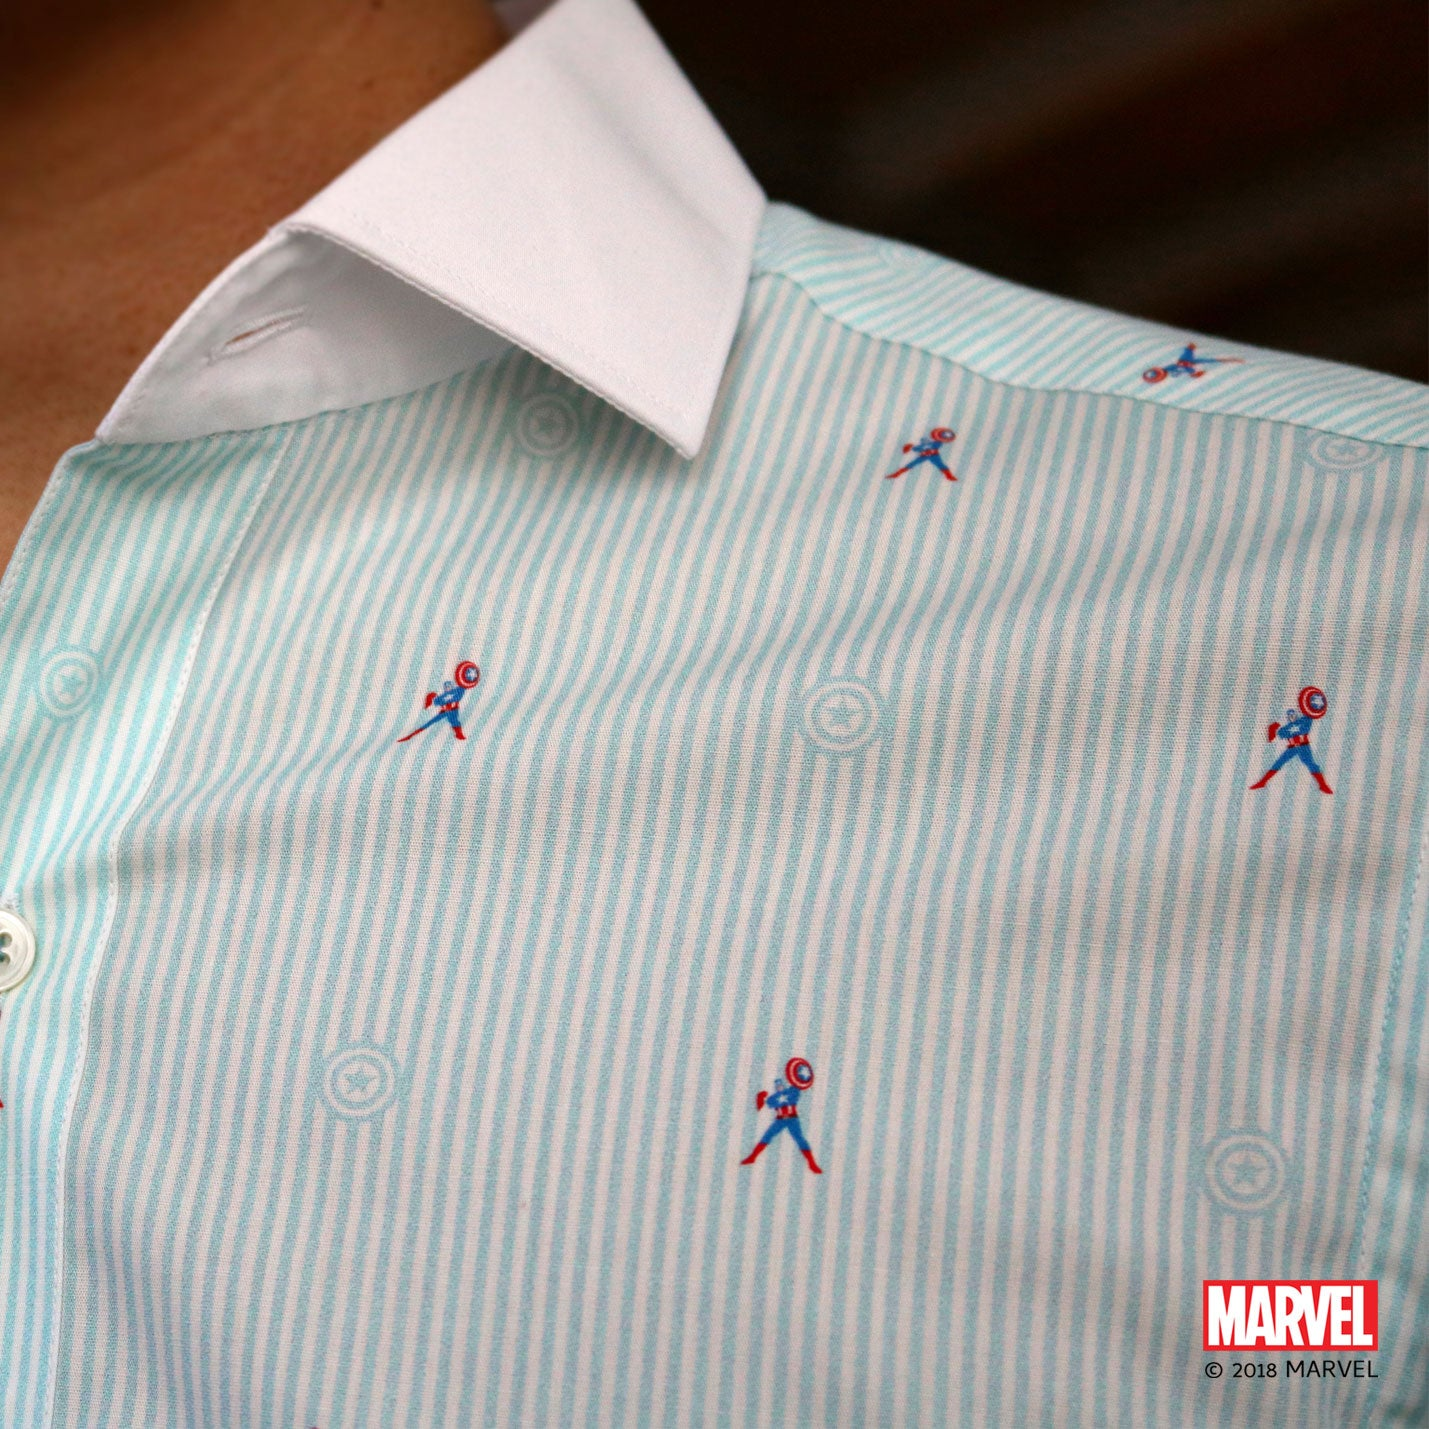 Marvel/CYC Captain America Blue Stripes Short Sleeve Shirt